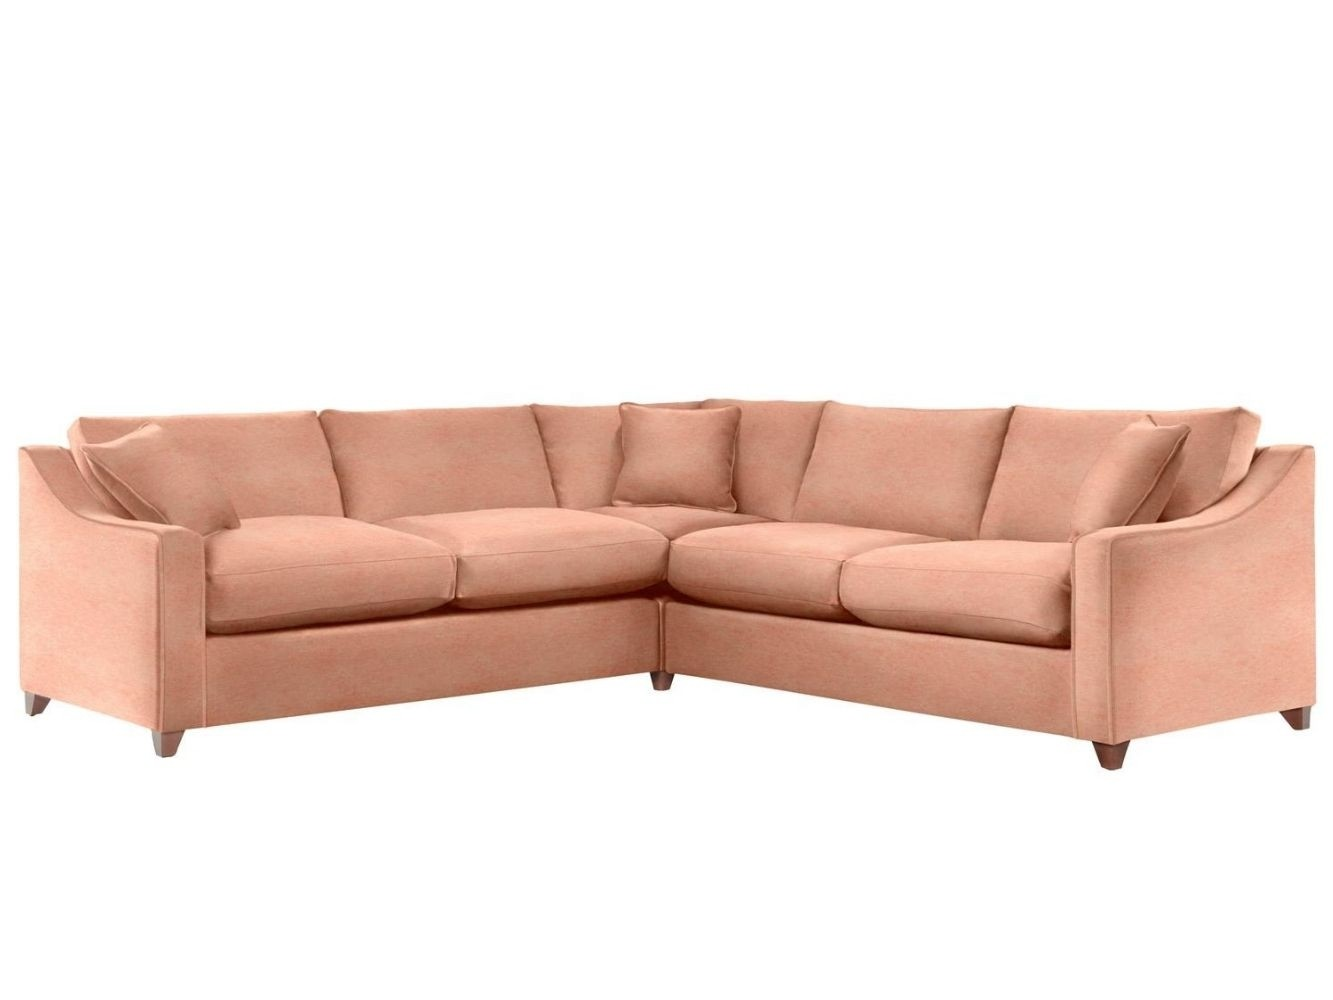 This is how I look in Stain Resistant Vintage Velvet Bloom (Discontinued Fabric) with feather-wrapped foam seat cushions